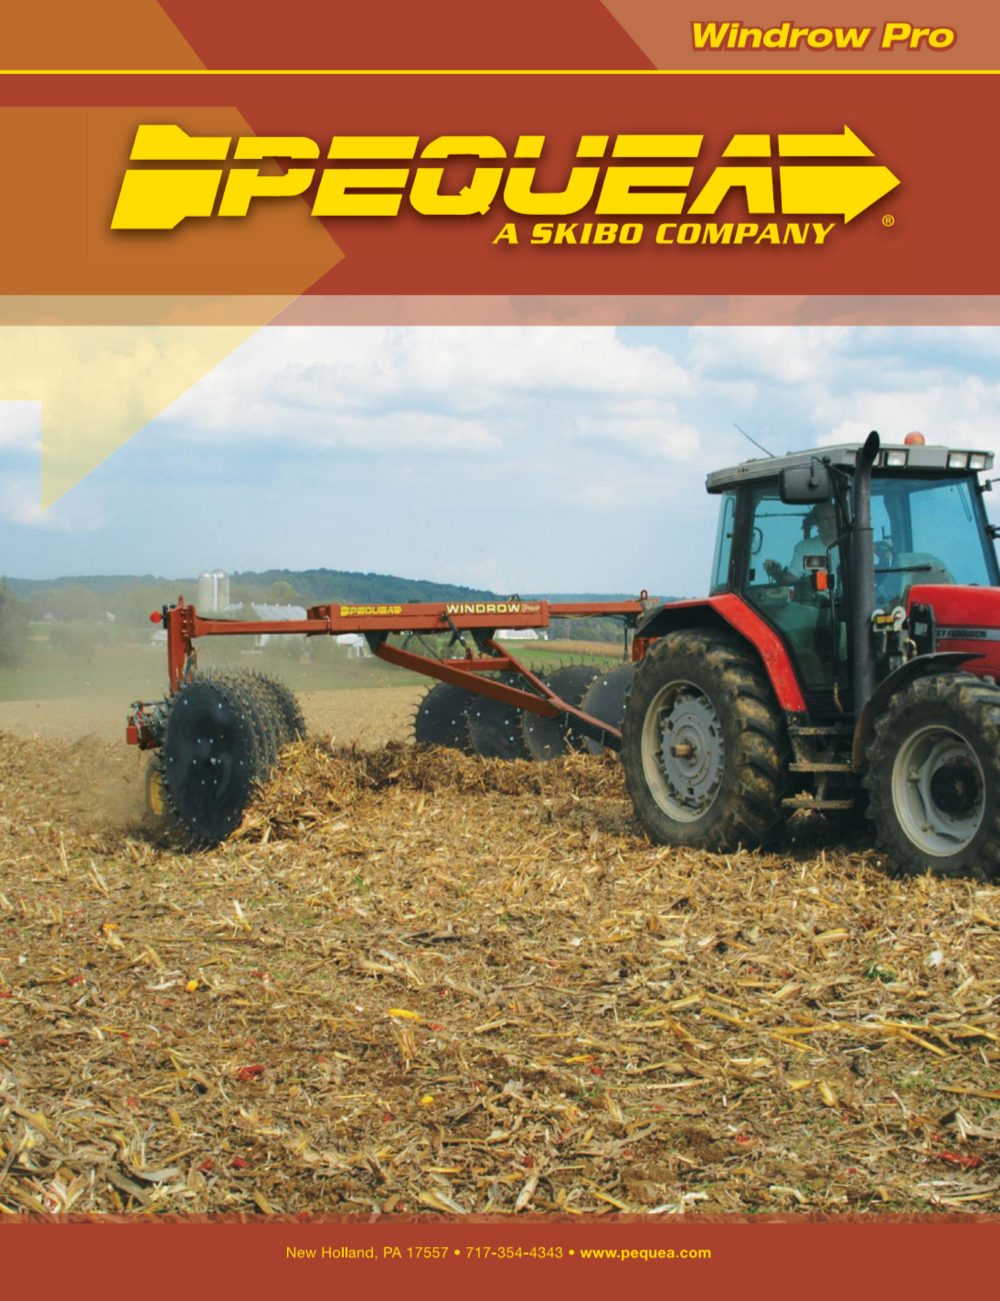 Windrow Pro brochure